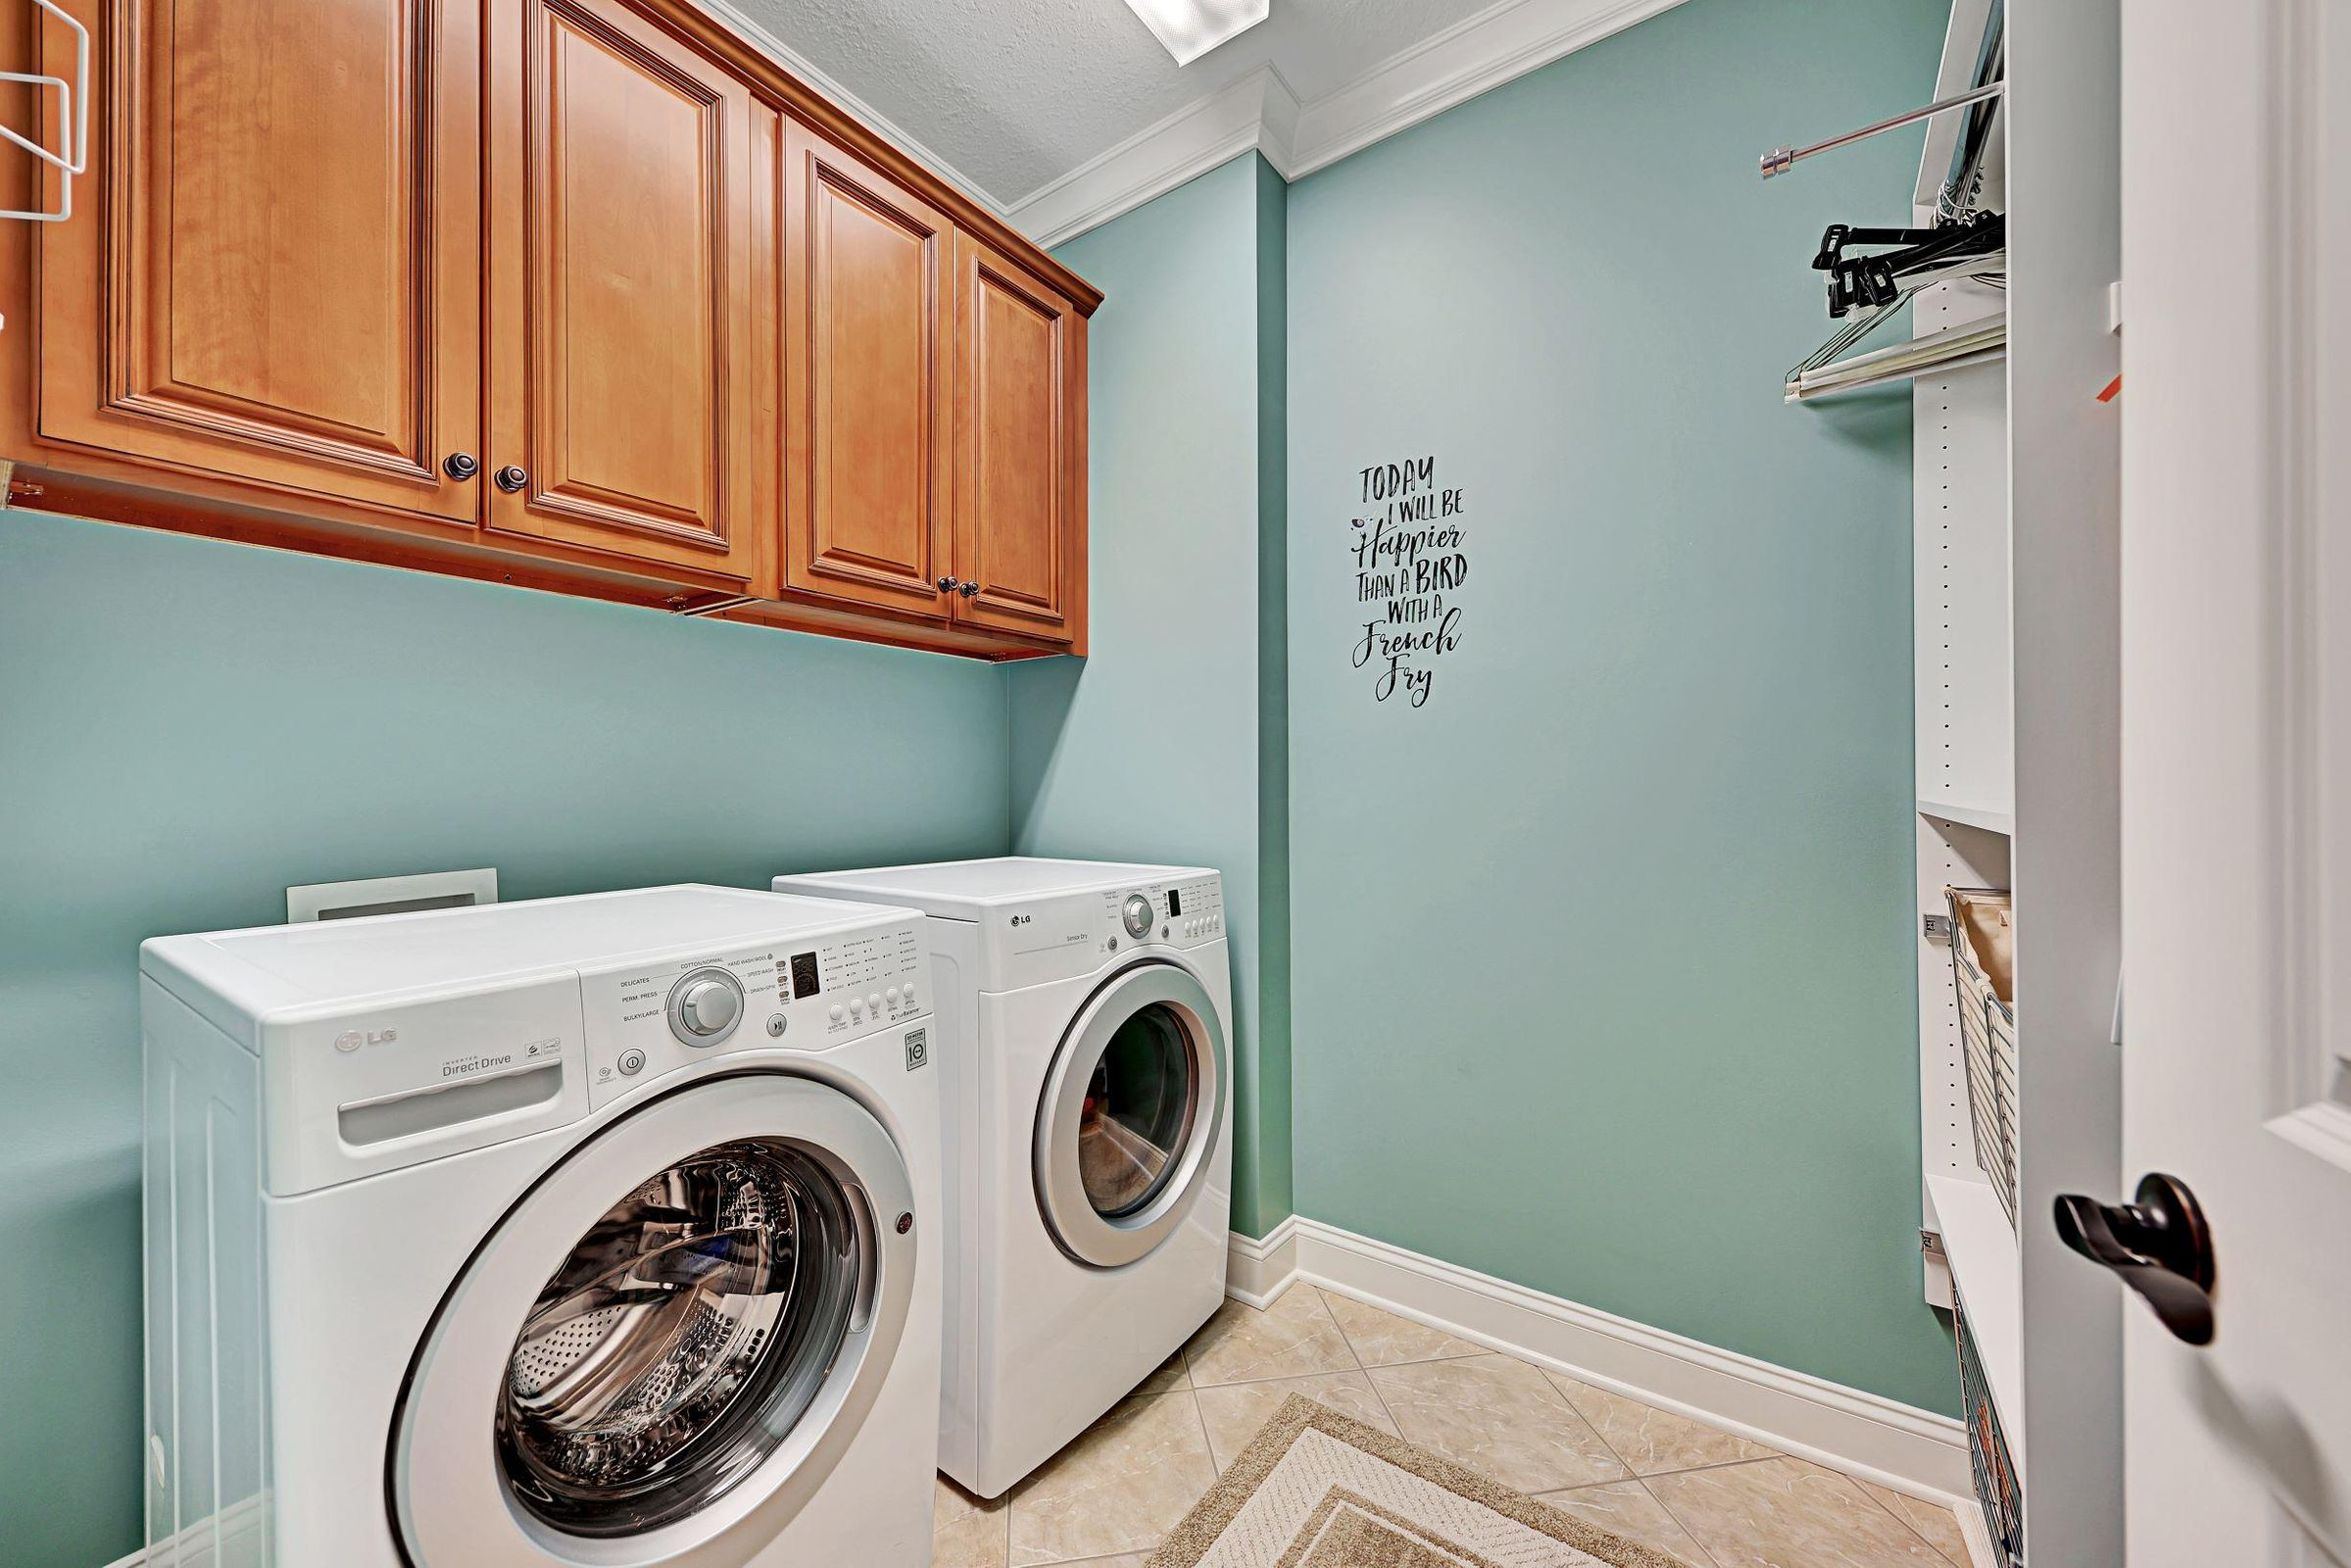 Laundry room with cabinets, shelves